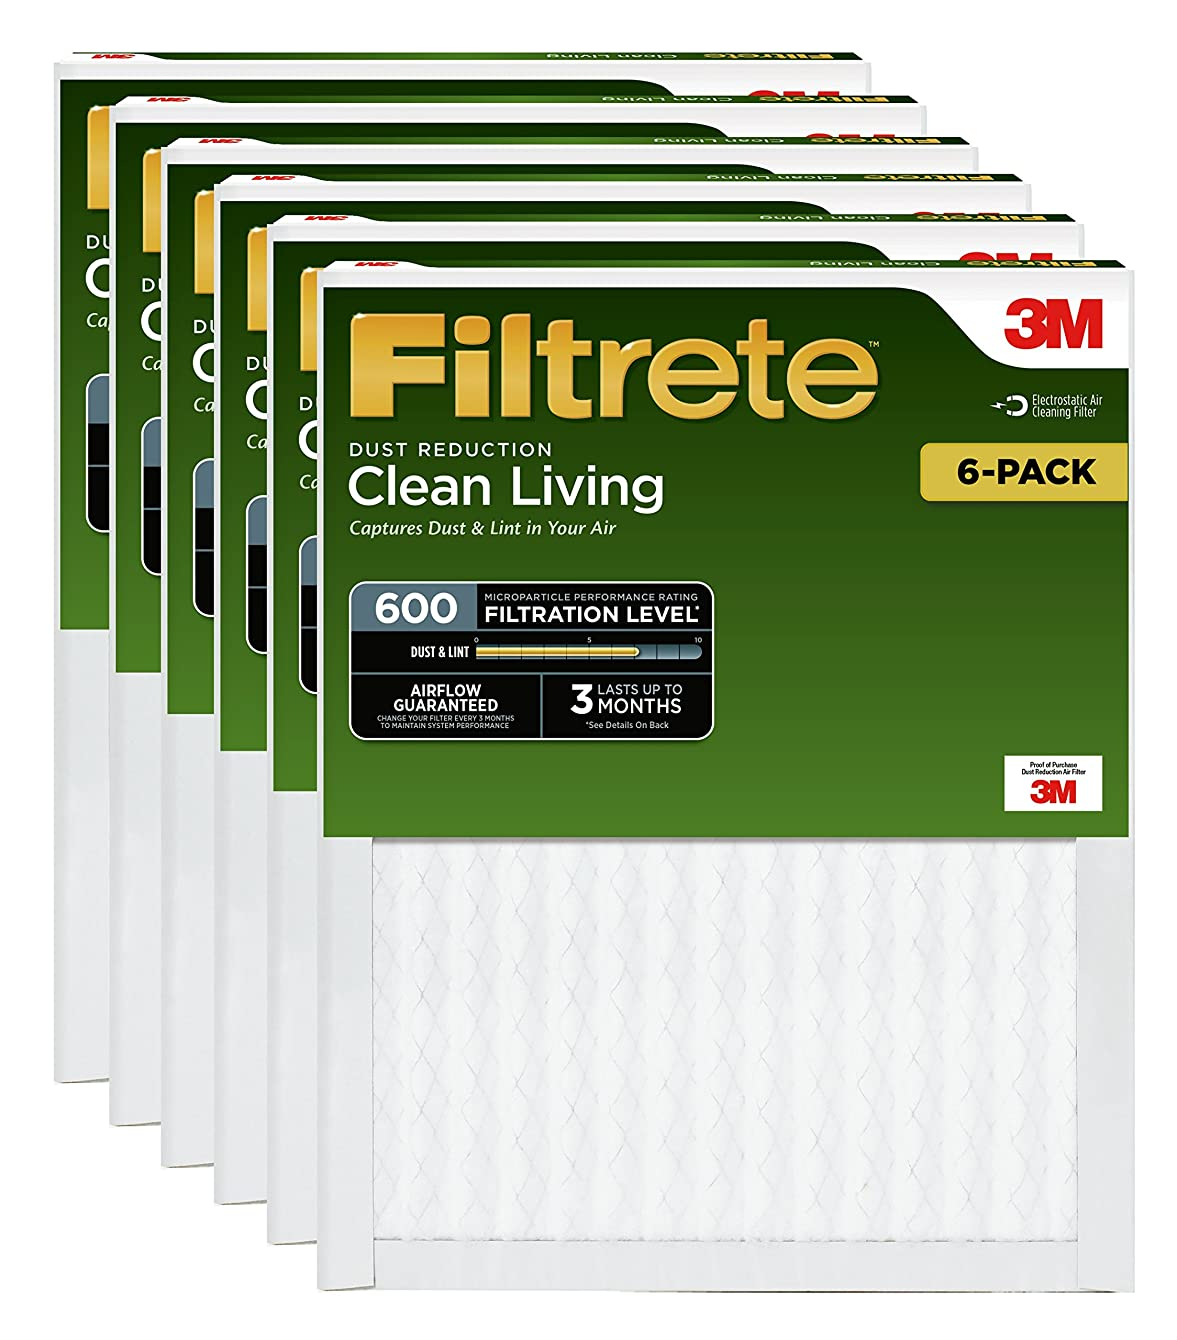 Filtrete 16x25x1, AC Furnace Air Filter, MPR 600, Clean Living Dust Reduction, 6-Pack